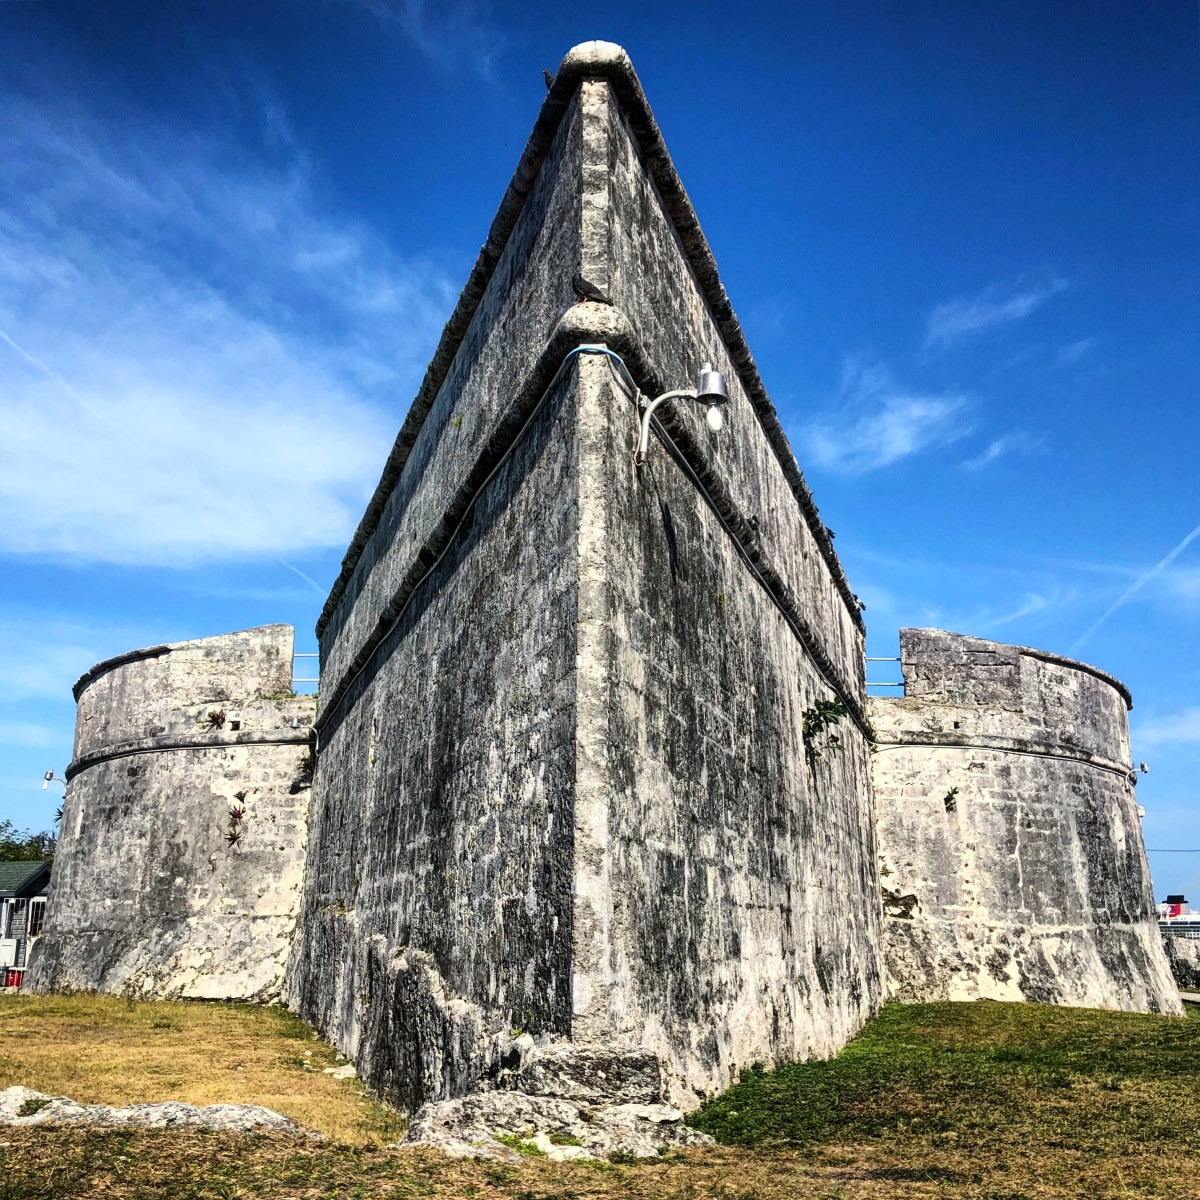 Downtown Nassau on Your Own: Walking Guide